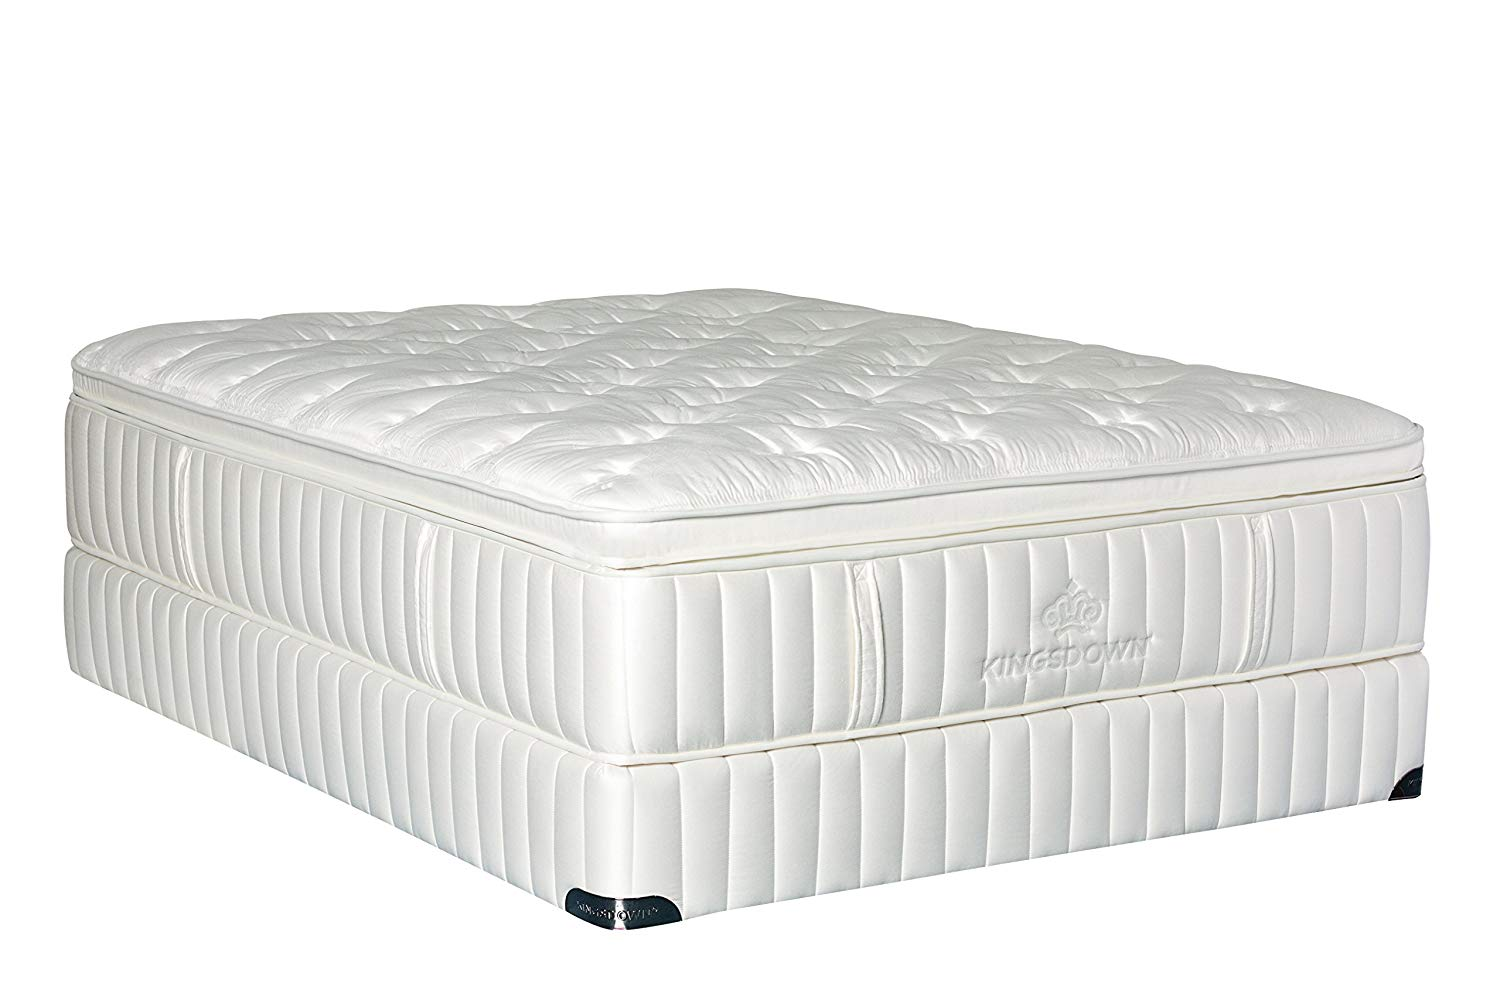 Kingsdown 3220 Vintage Interfusion Mattress